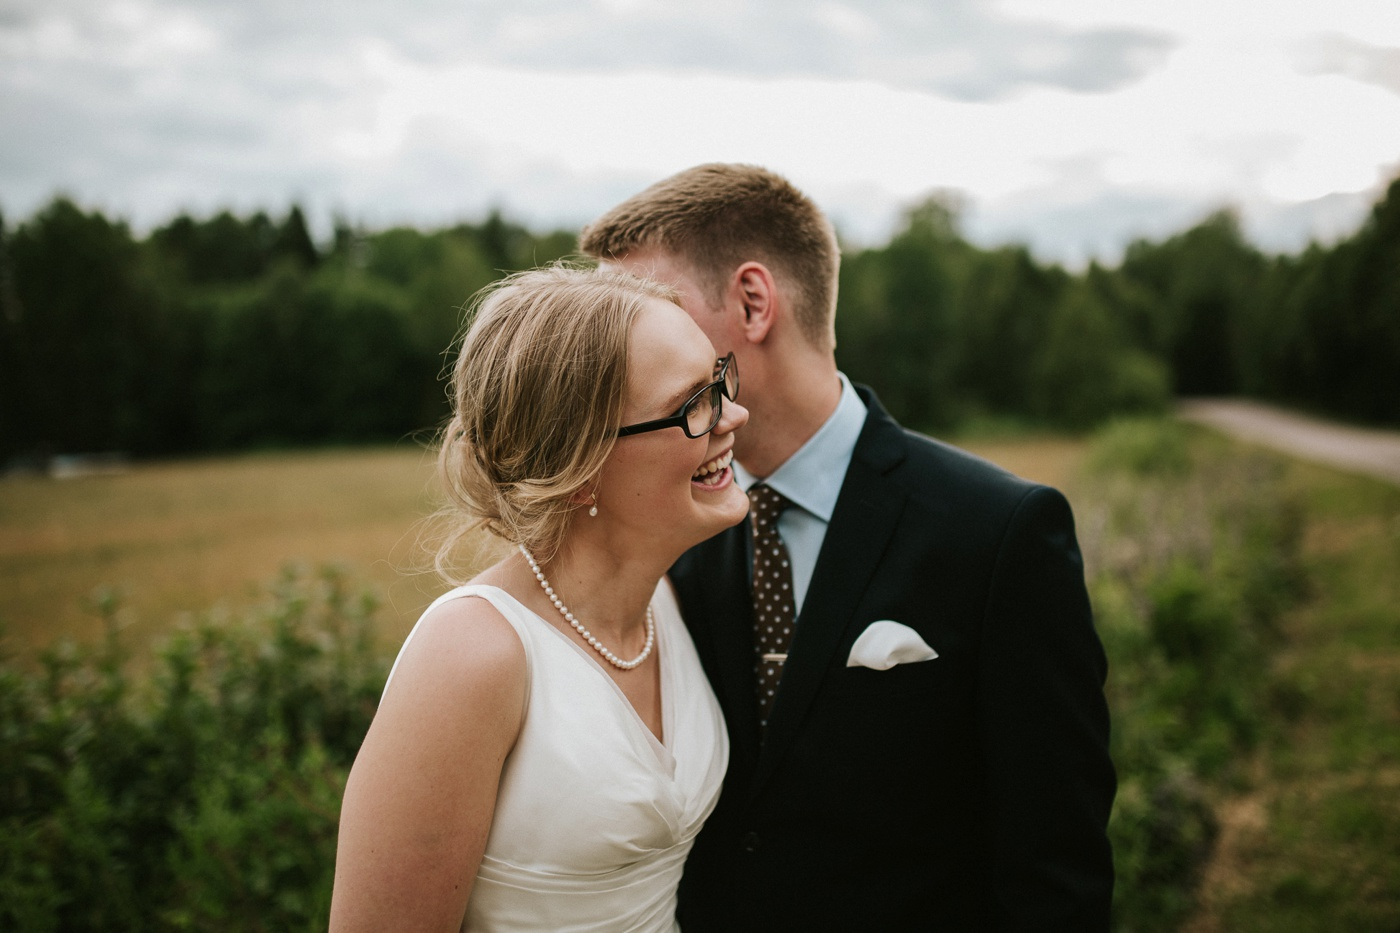 ceciliajoakim_sweden-countryside-summer-wedding_melbourne-fun-quirky-wedding-photography_91